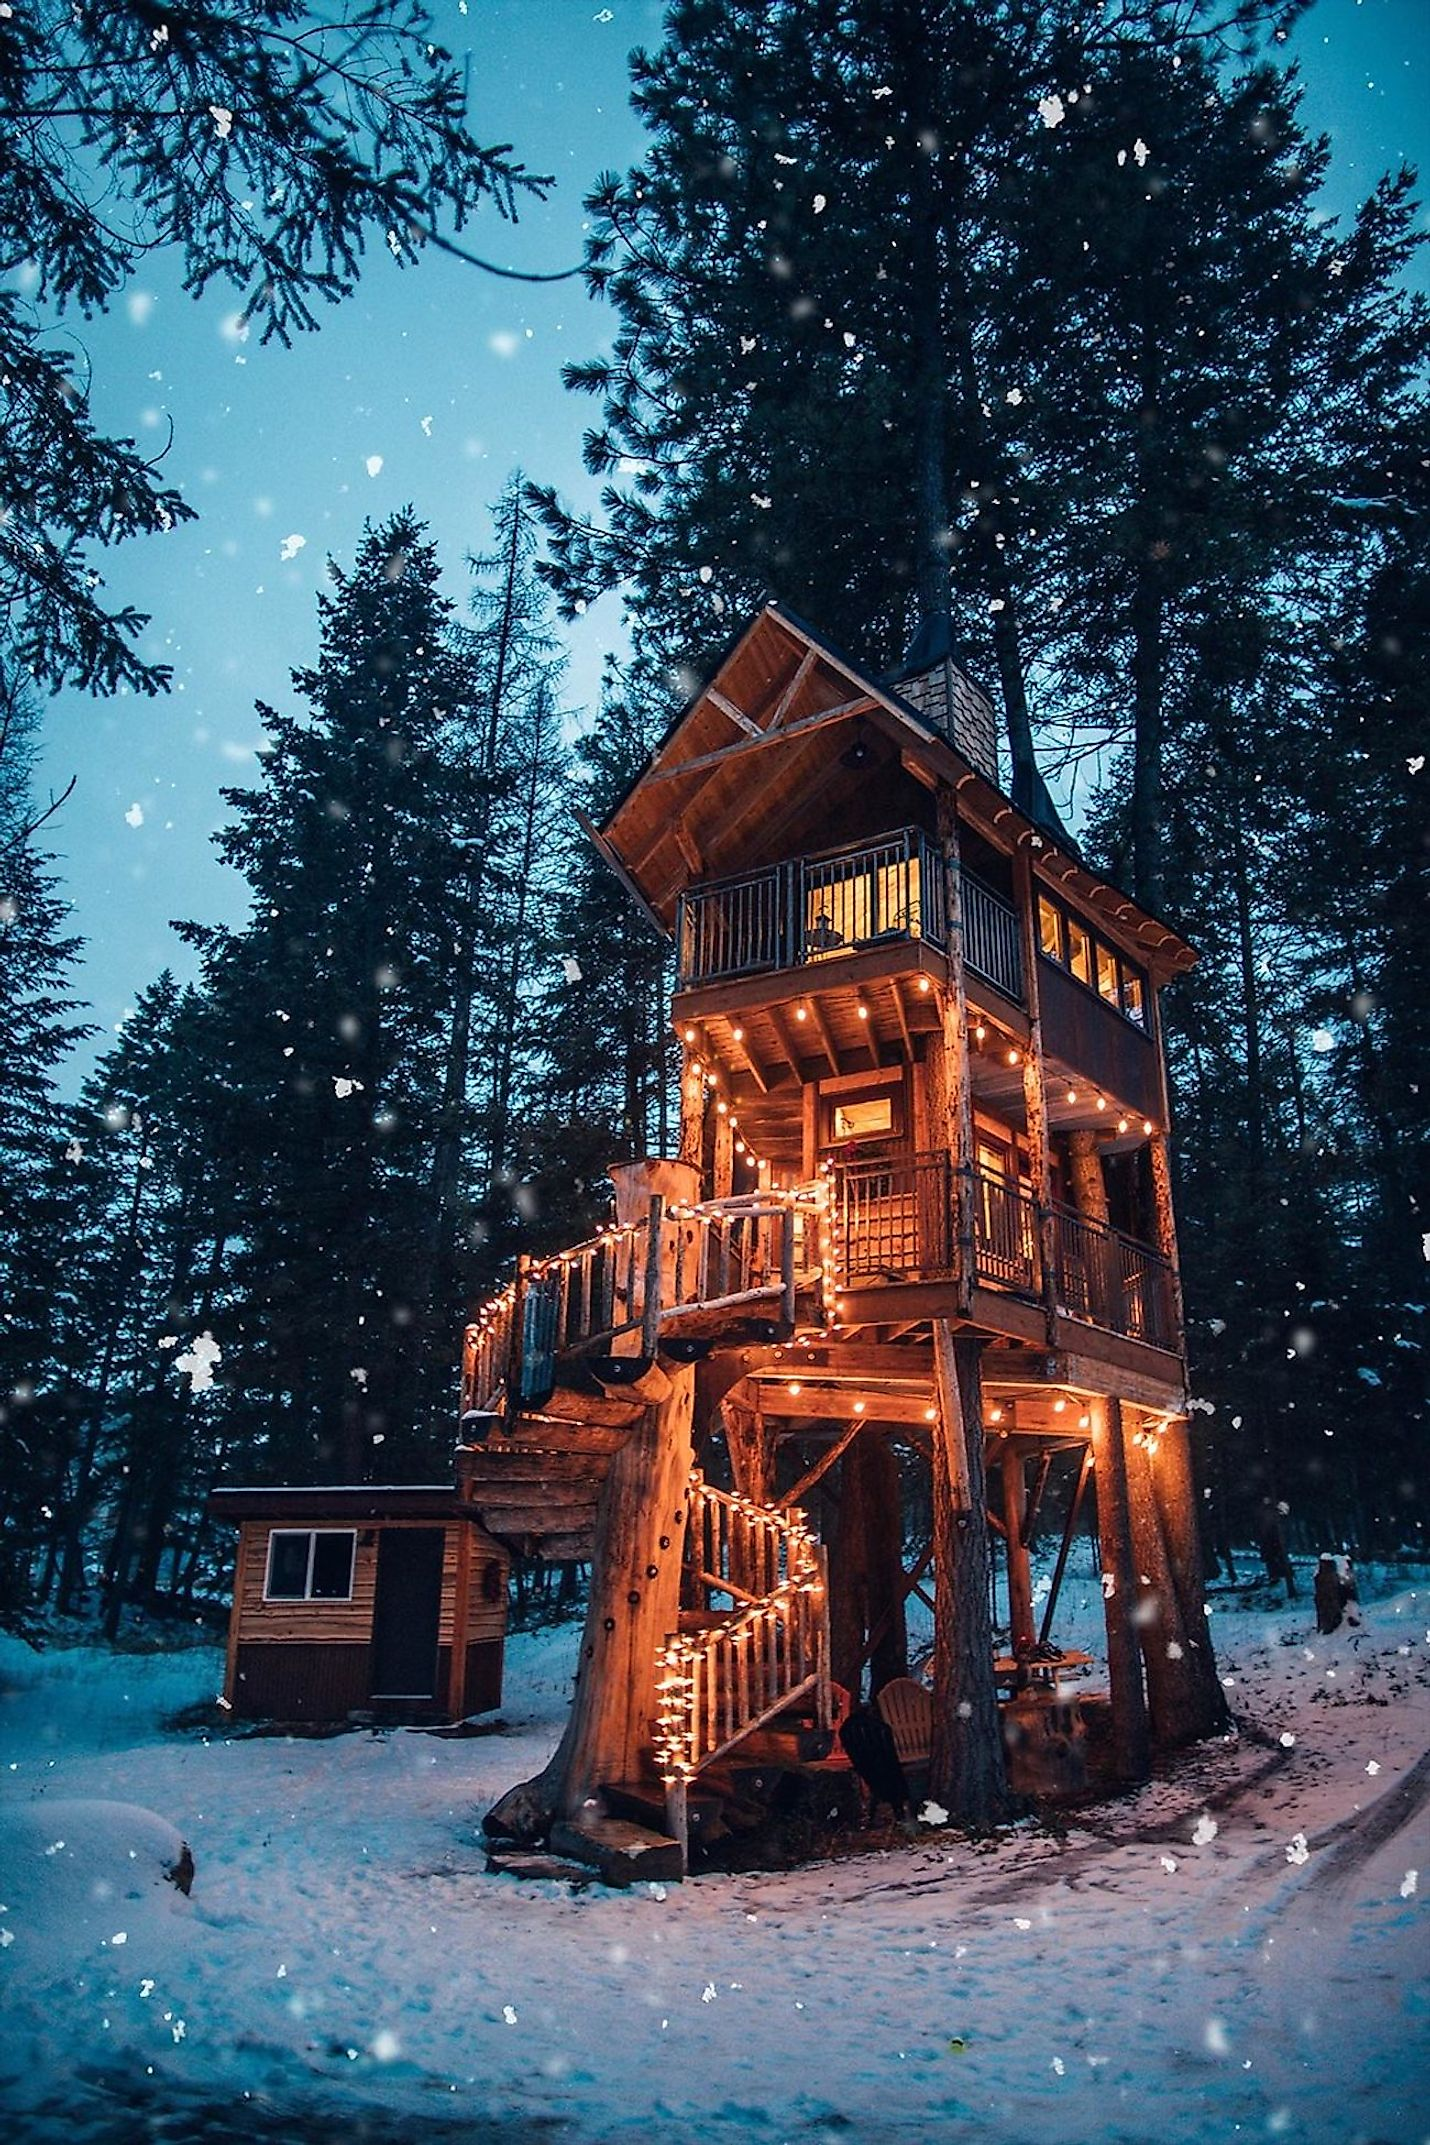 Montana Treehouse Retreat, the United States. Image credit: http://www.montanatreehouseretreat.com